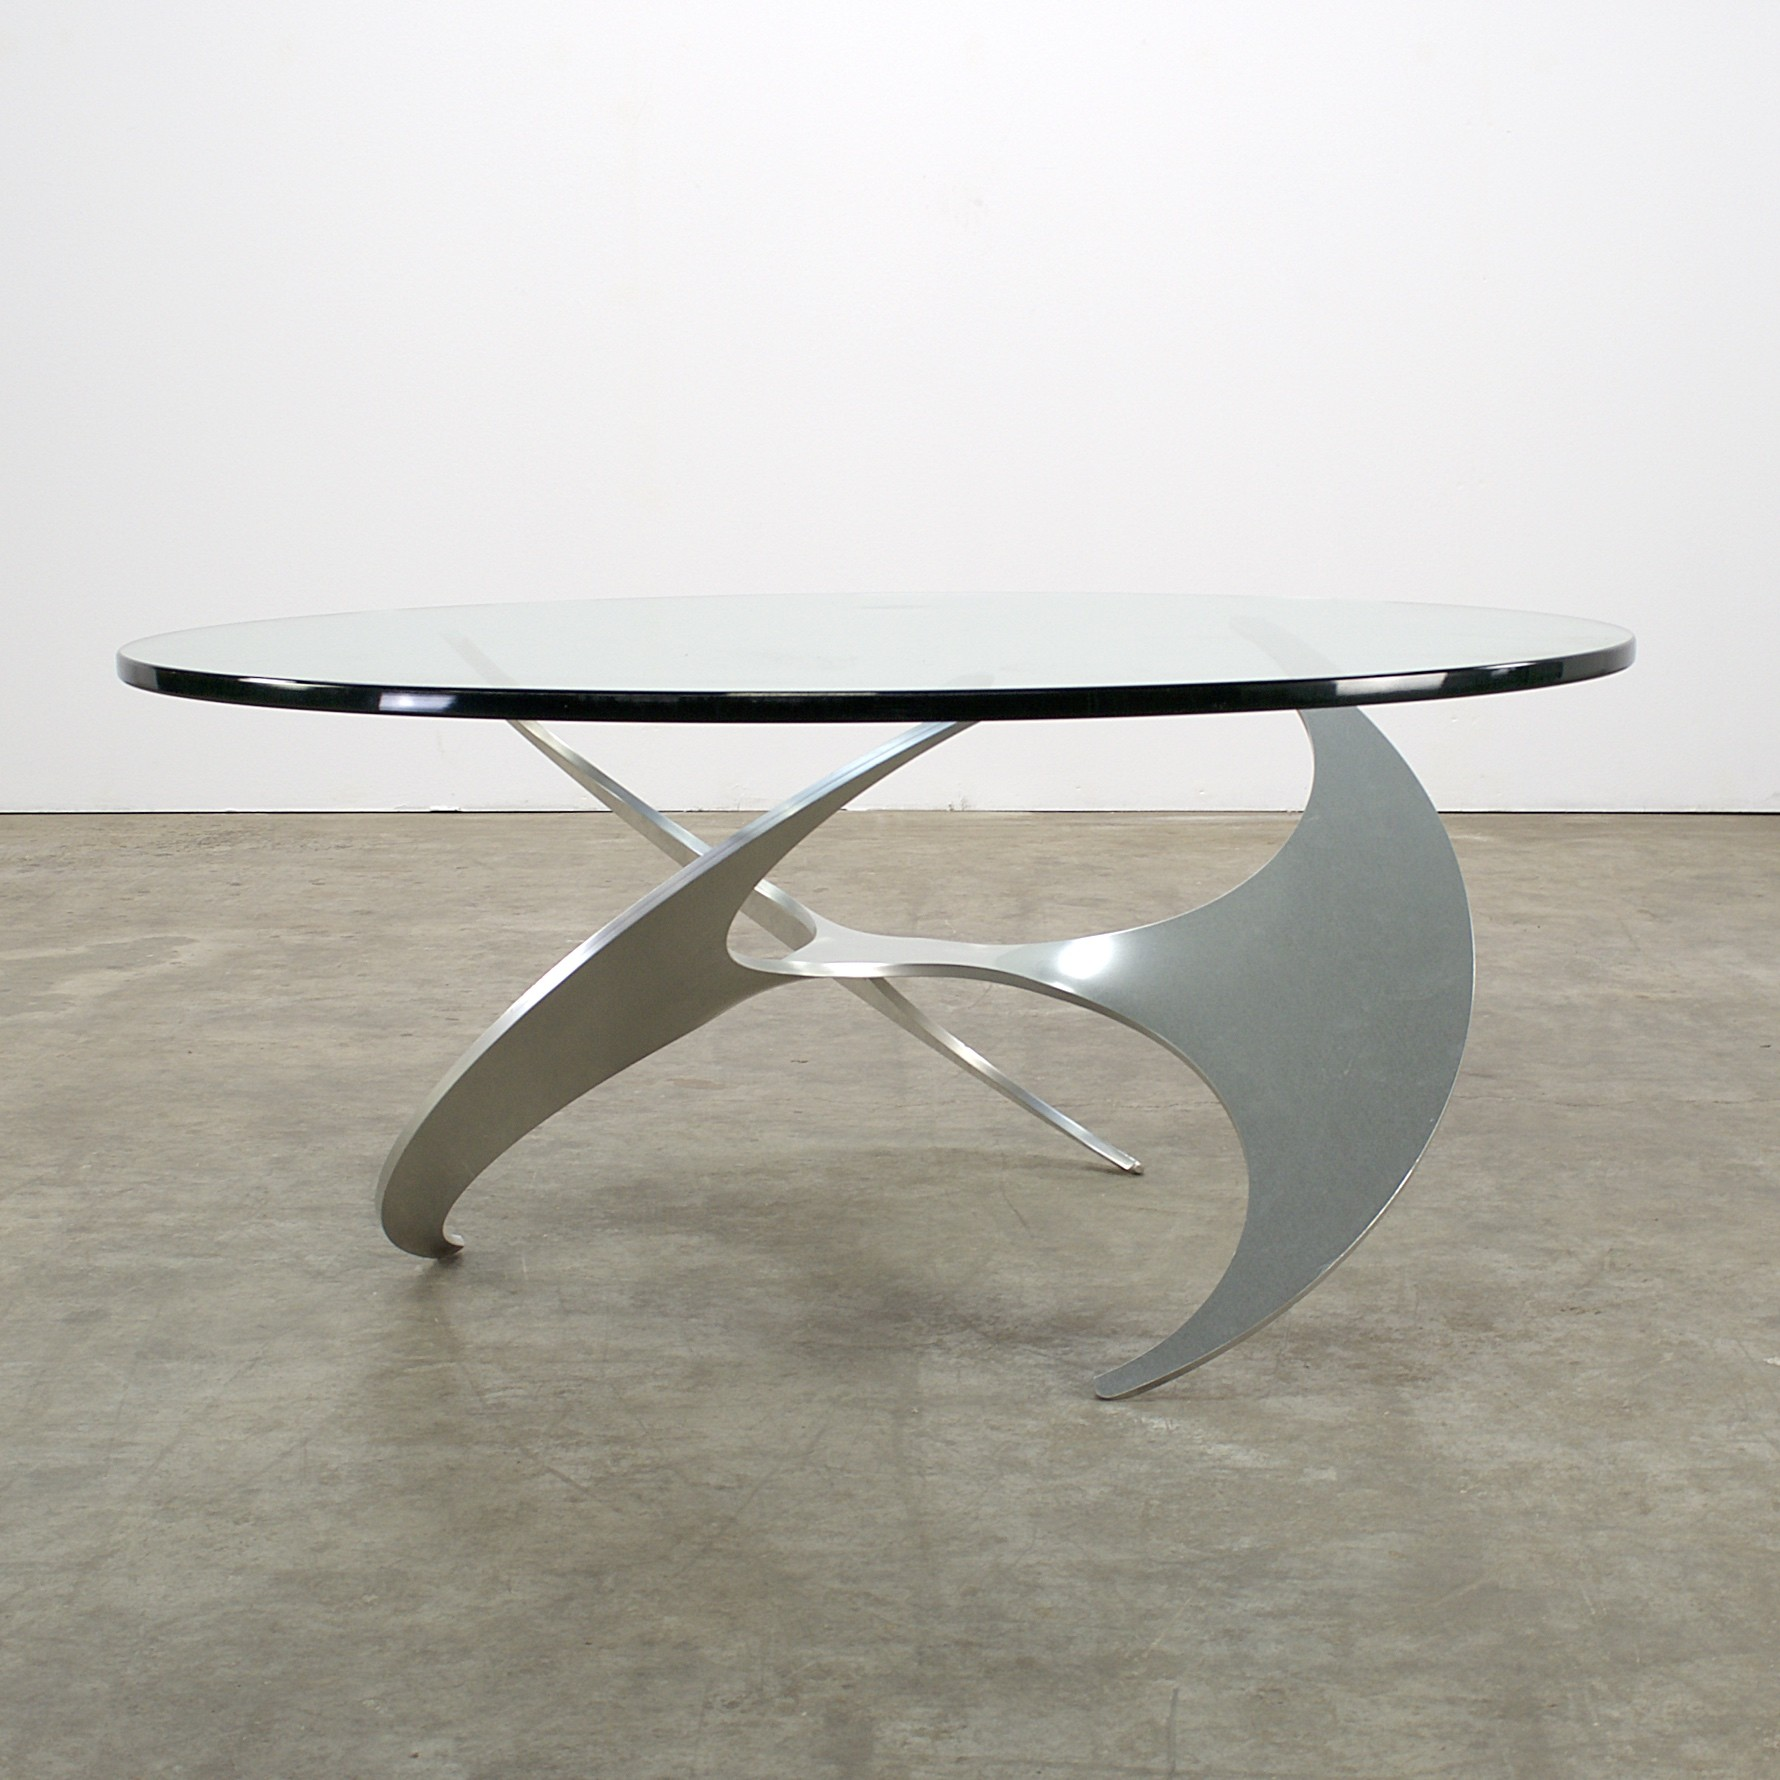 Quot Propeller Quot Coffee Table Knut Hesterberg 1970s Design